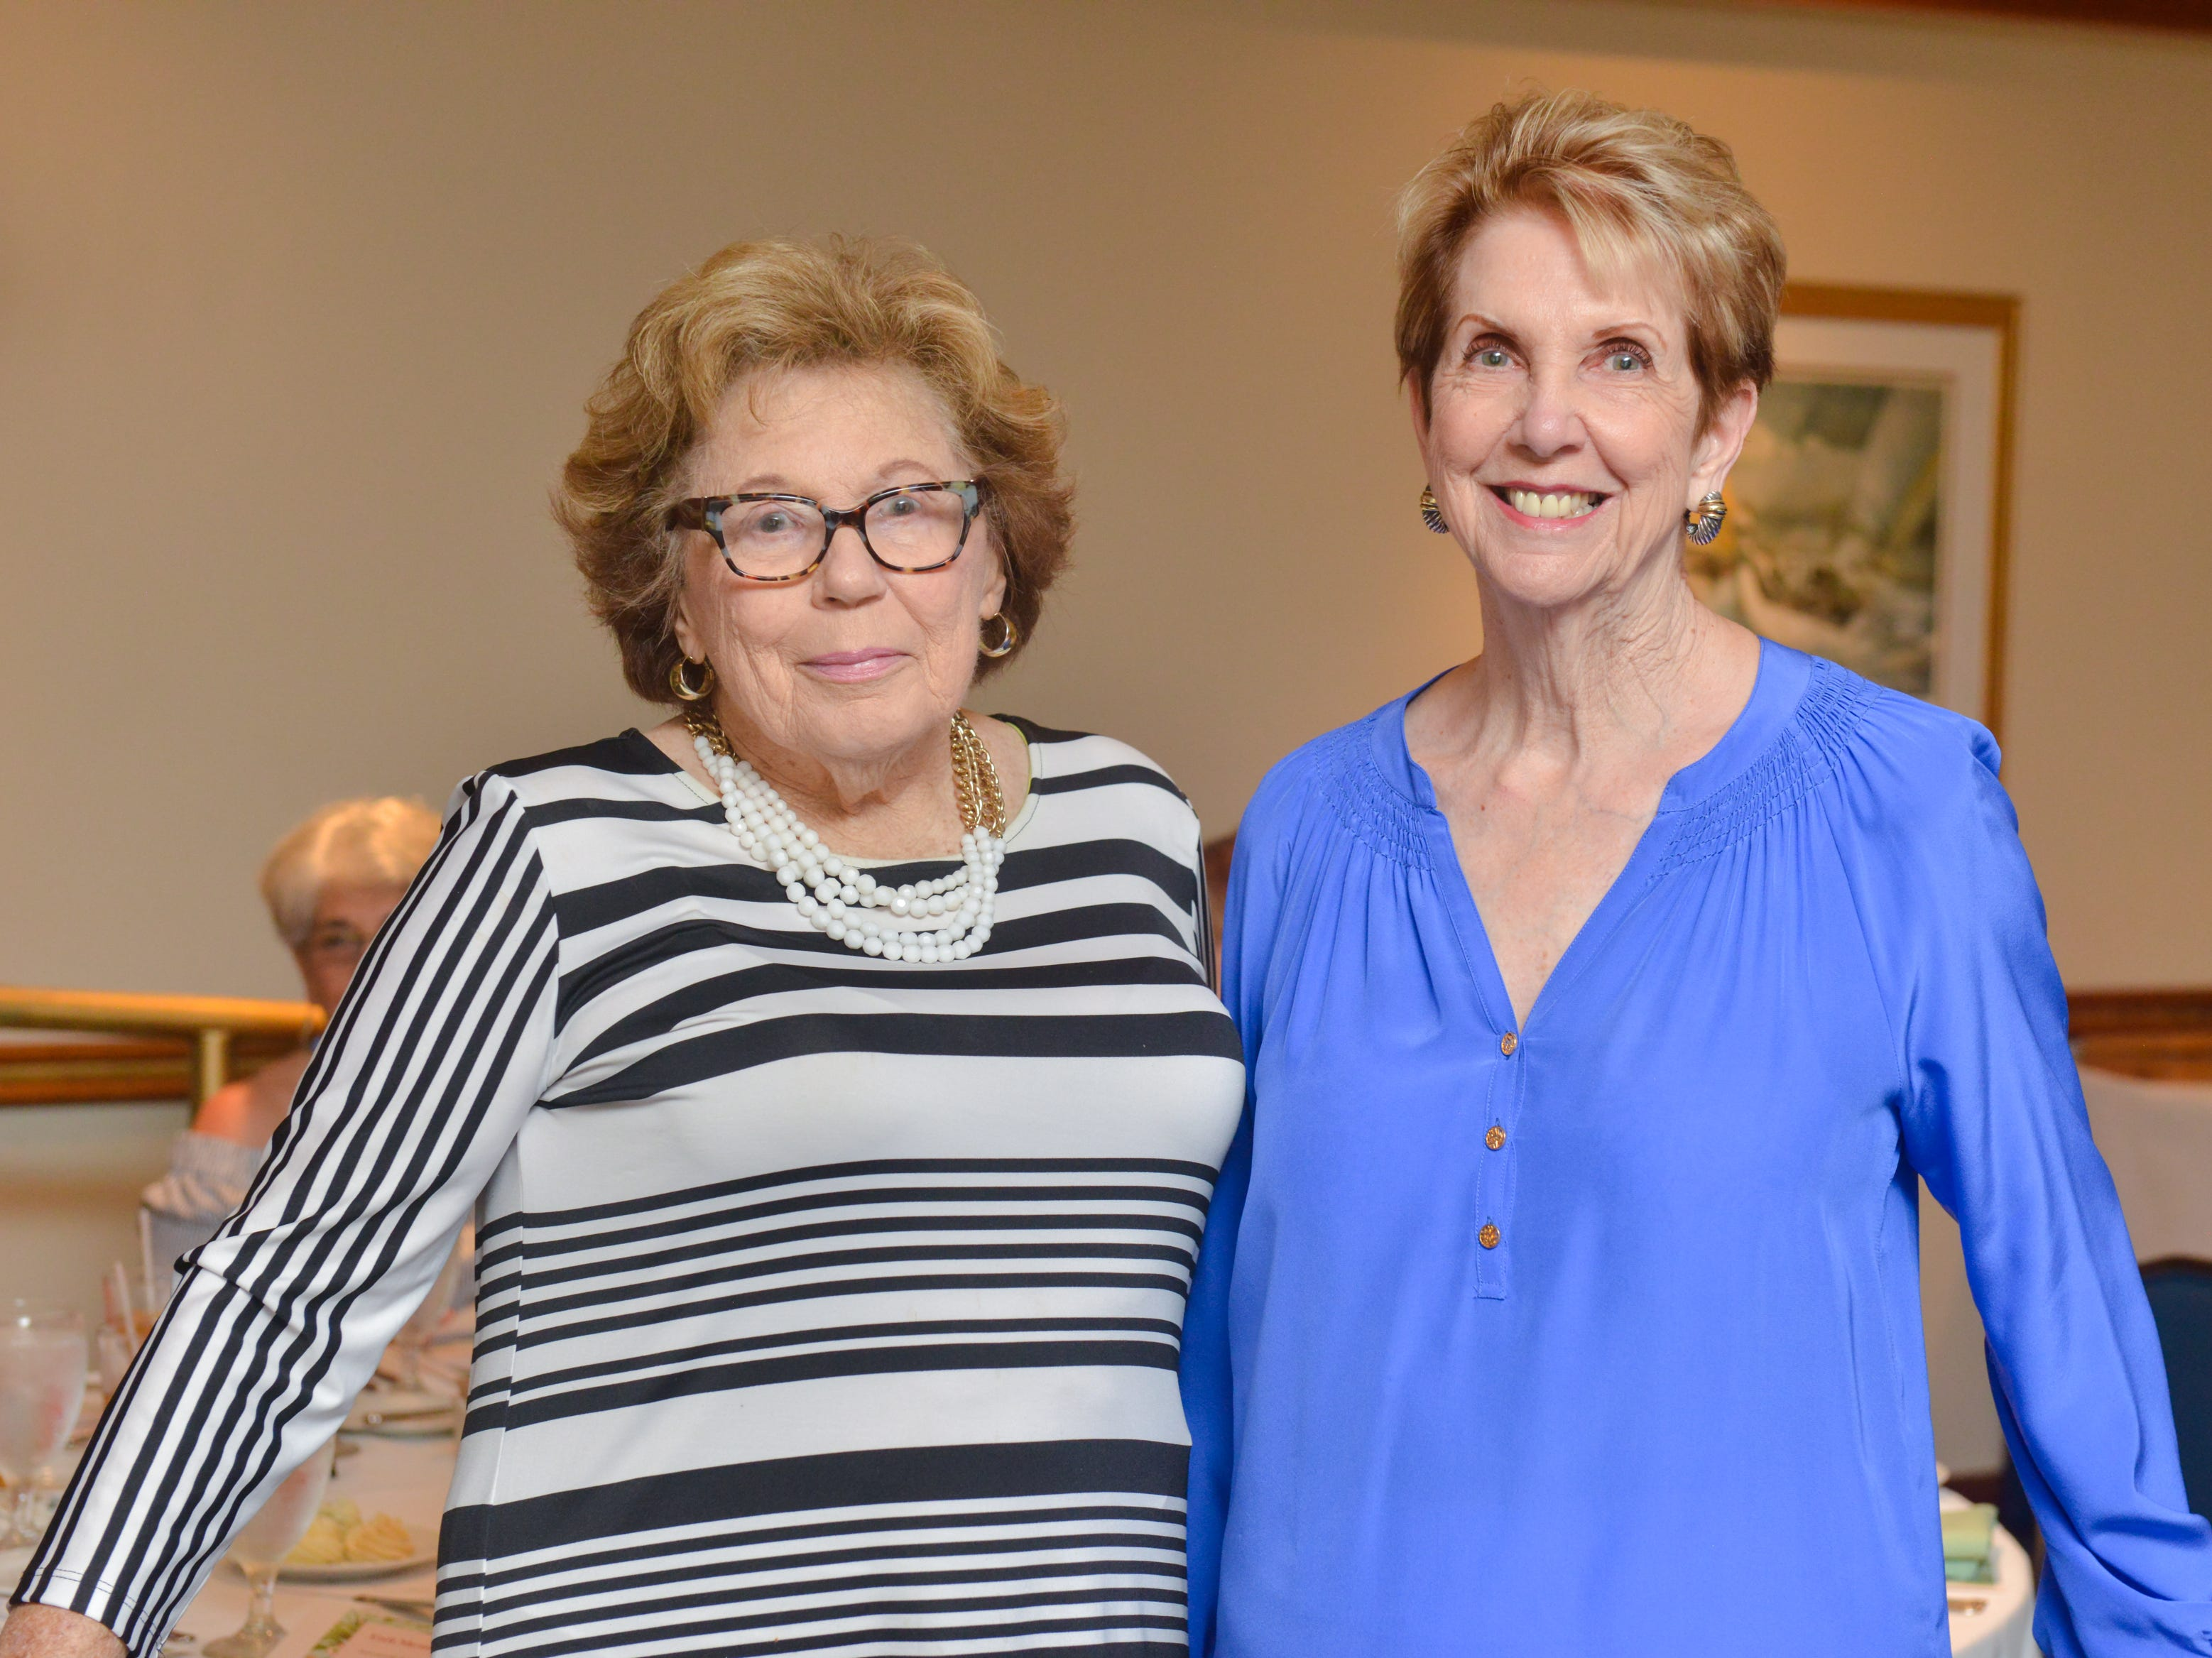 Dorothy Brett and Carole Gatto at Friends of Sally's House luncheon at the Eau Gallie Yacht Club.